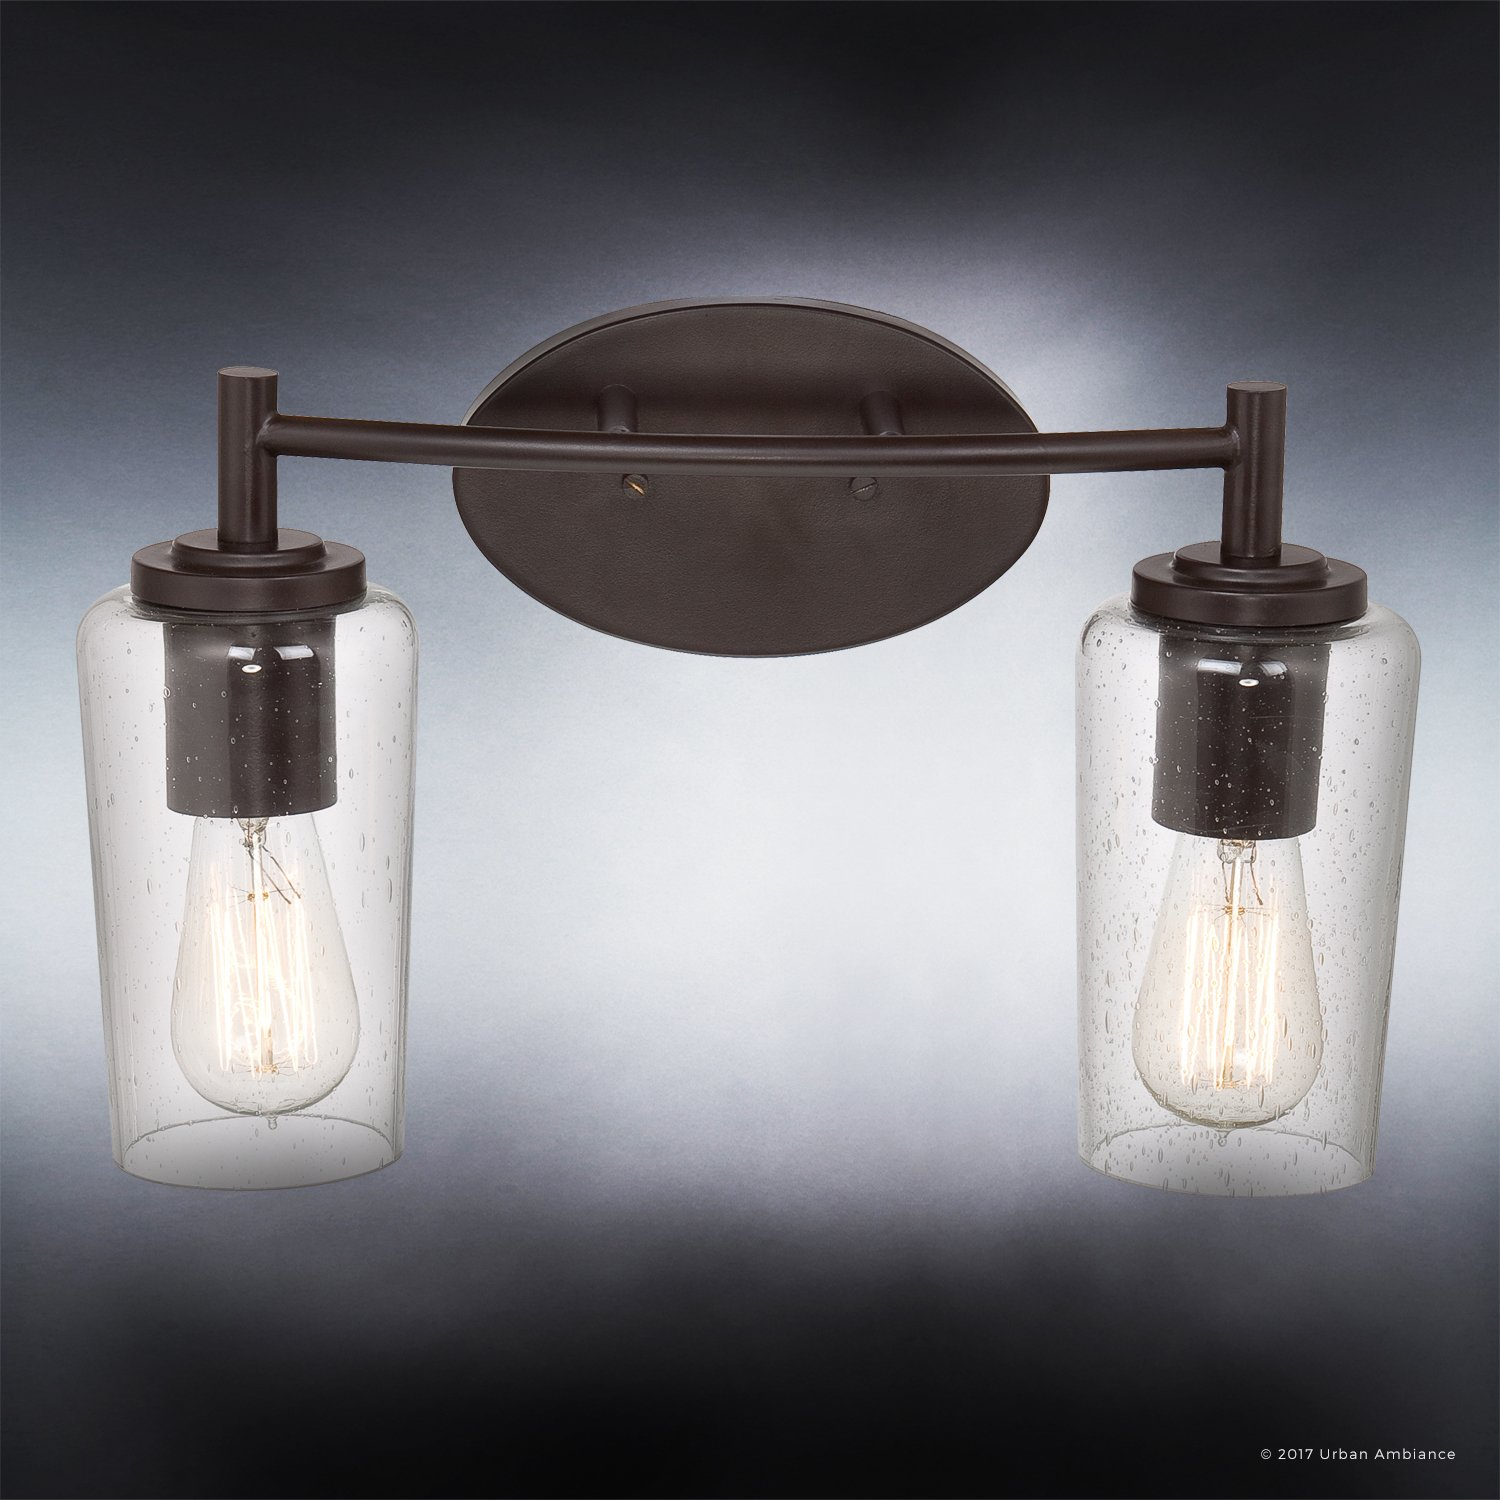 Luxury Vintage Bathroom Vanity Light, Medium Size: 10''H x 16''W, with Antique Style Elements, Elegant Estate Bronze Finish and Seeded Glass, Includes Edison Bulbs, UQL2271 by Urban Ambiance by Urban Ambiance (Image #4)